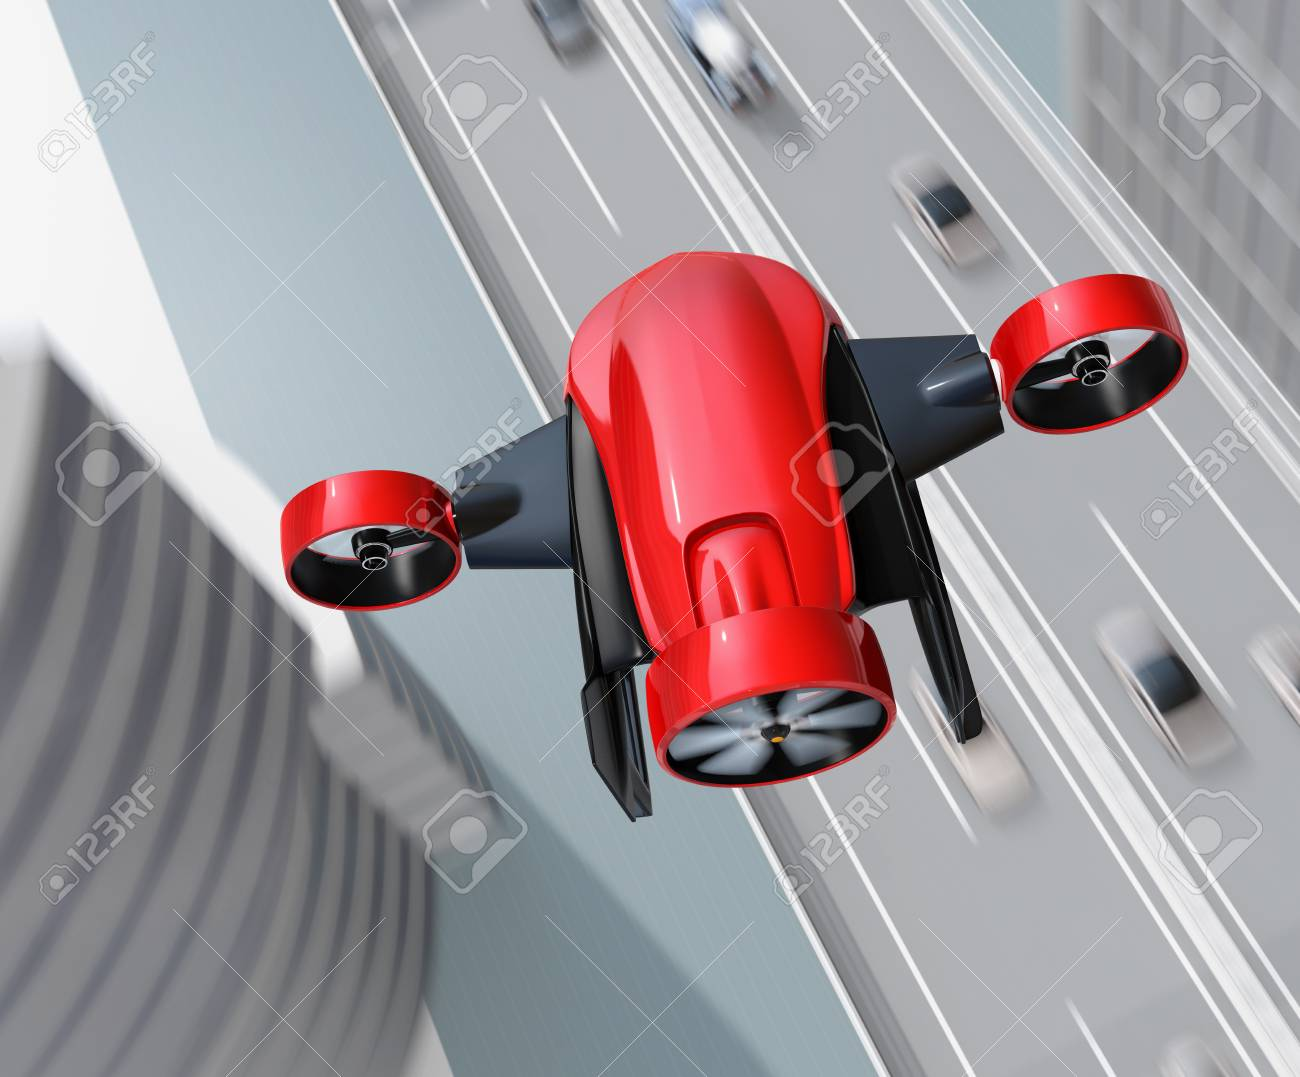 Top view of red VTOL drone carrying delivery packages flying